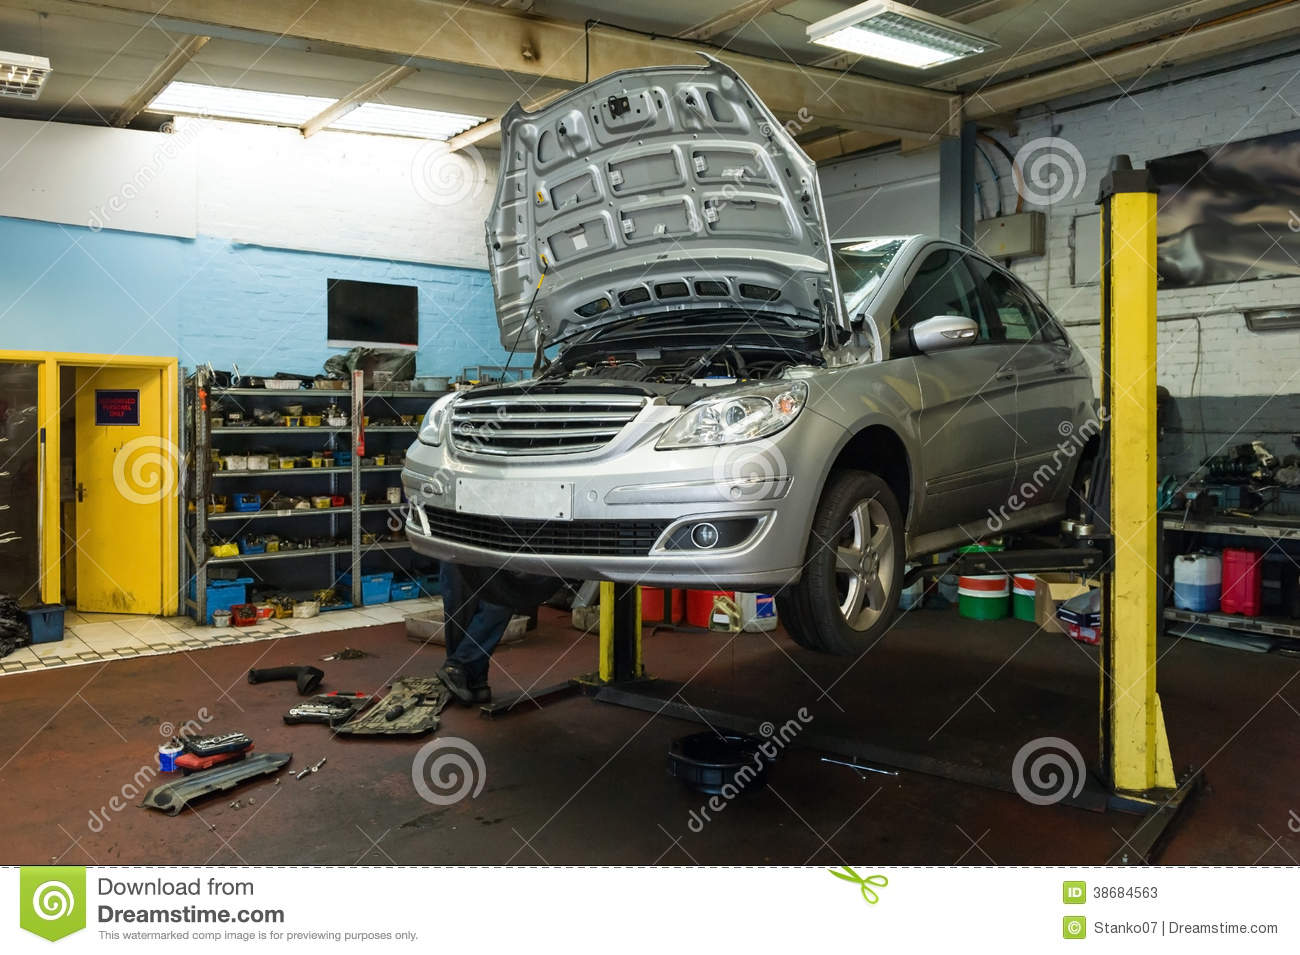 Garage Car Lift Images Car On A Lift In Garage Stock Image Image Of Engineering 38684563